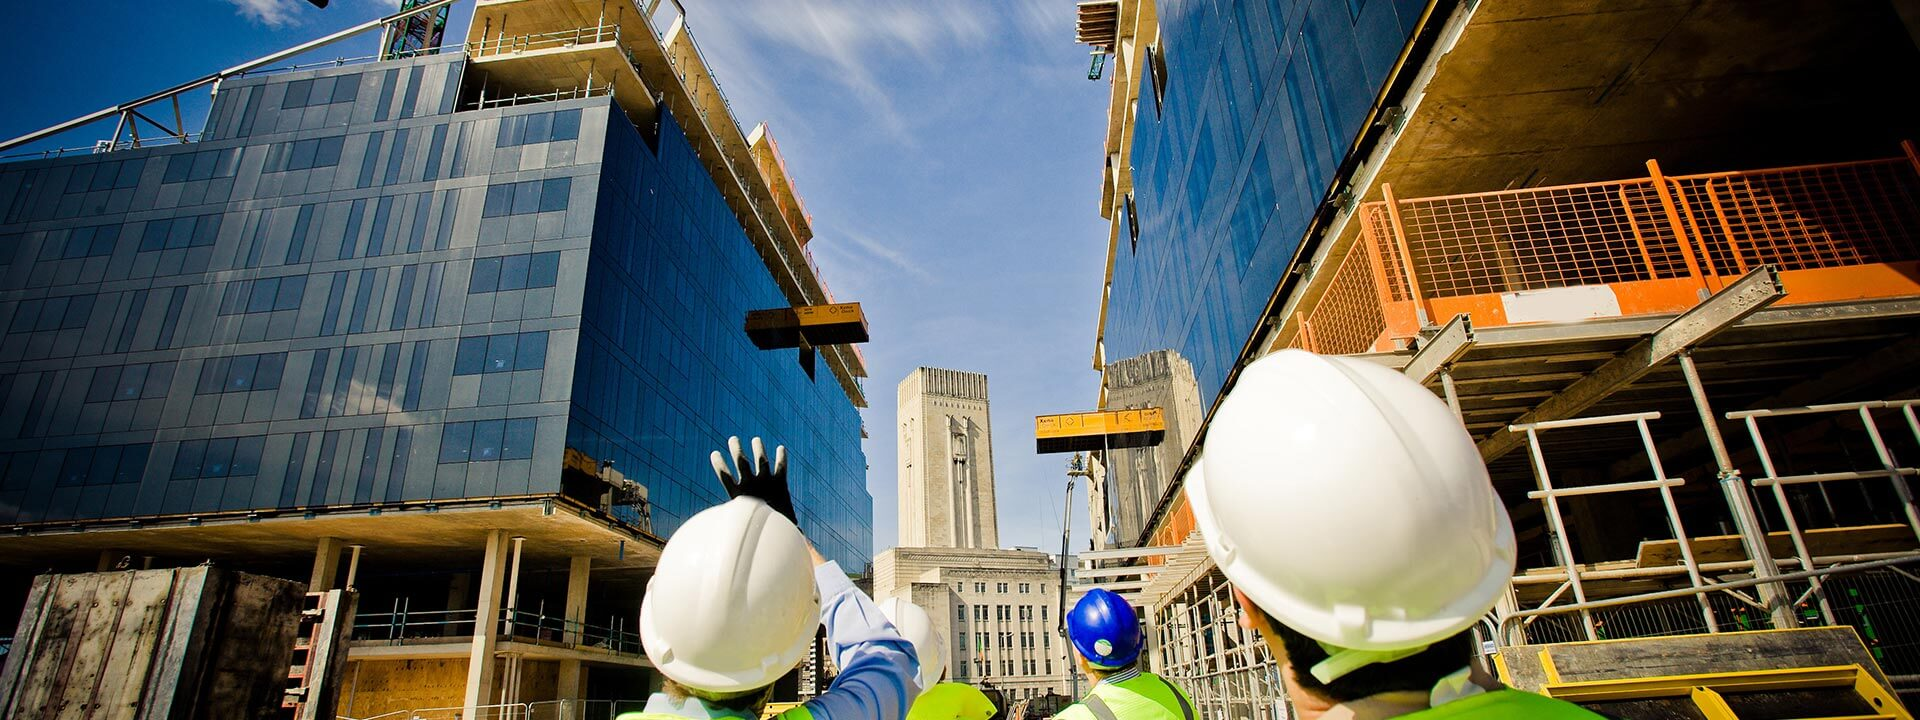 Construction workers looking up at a building site above